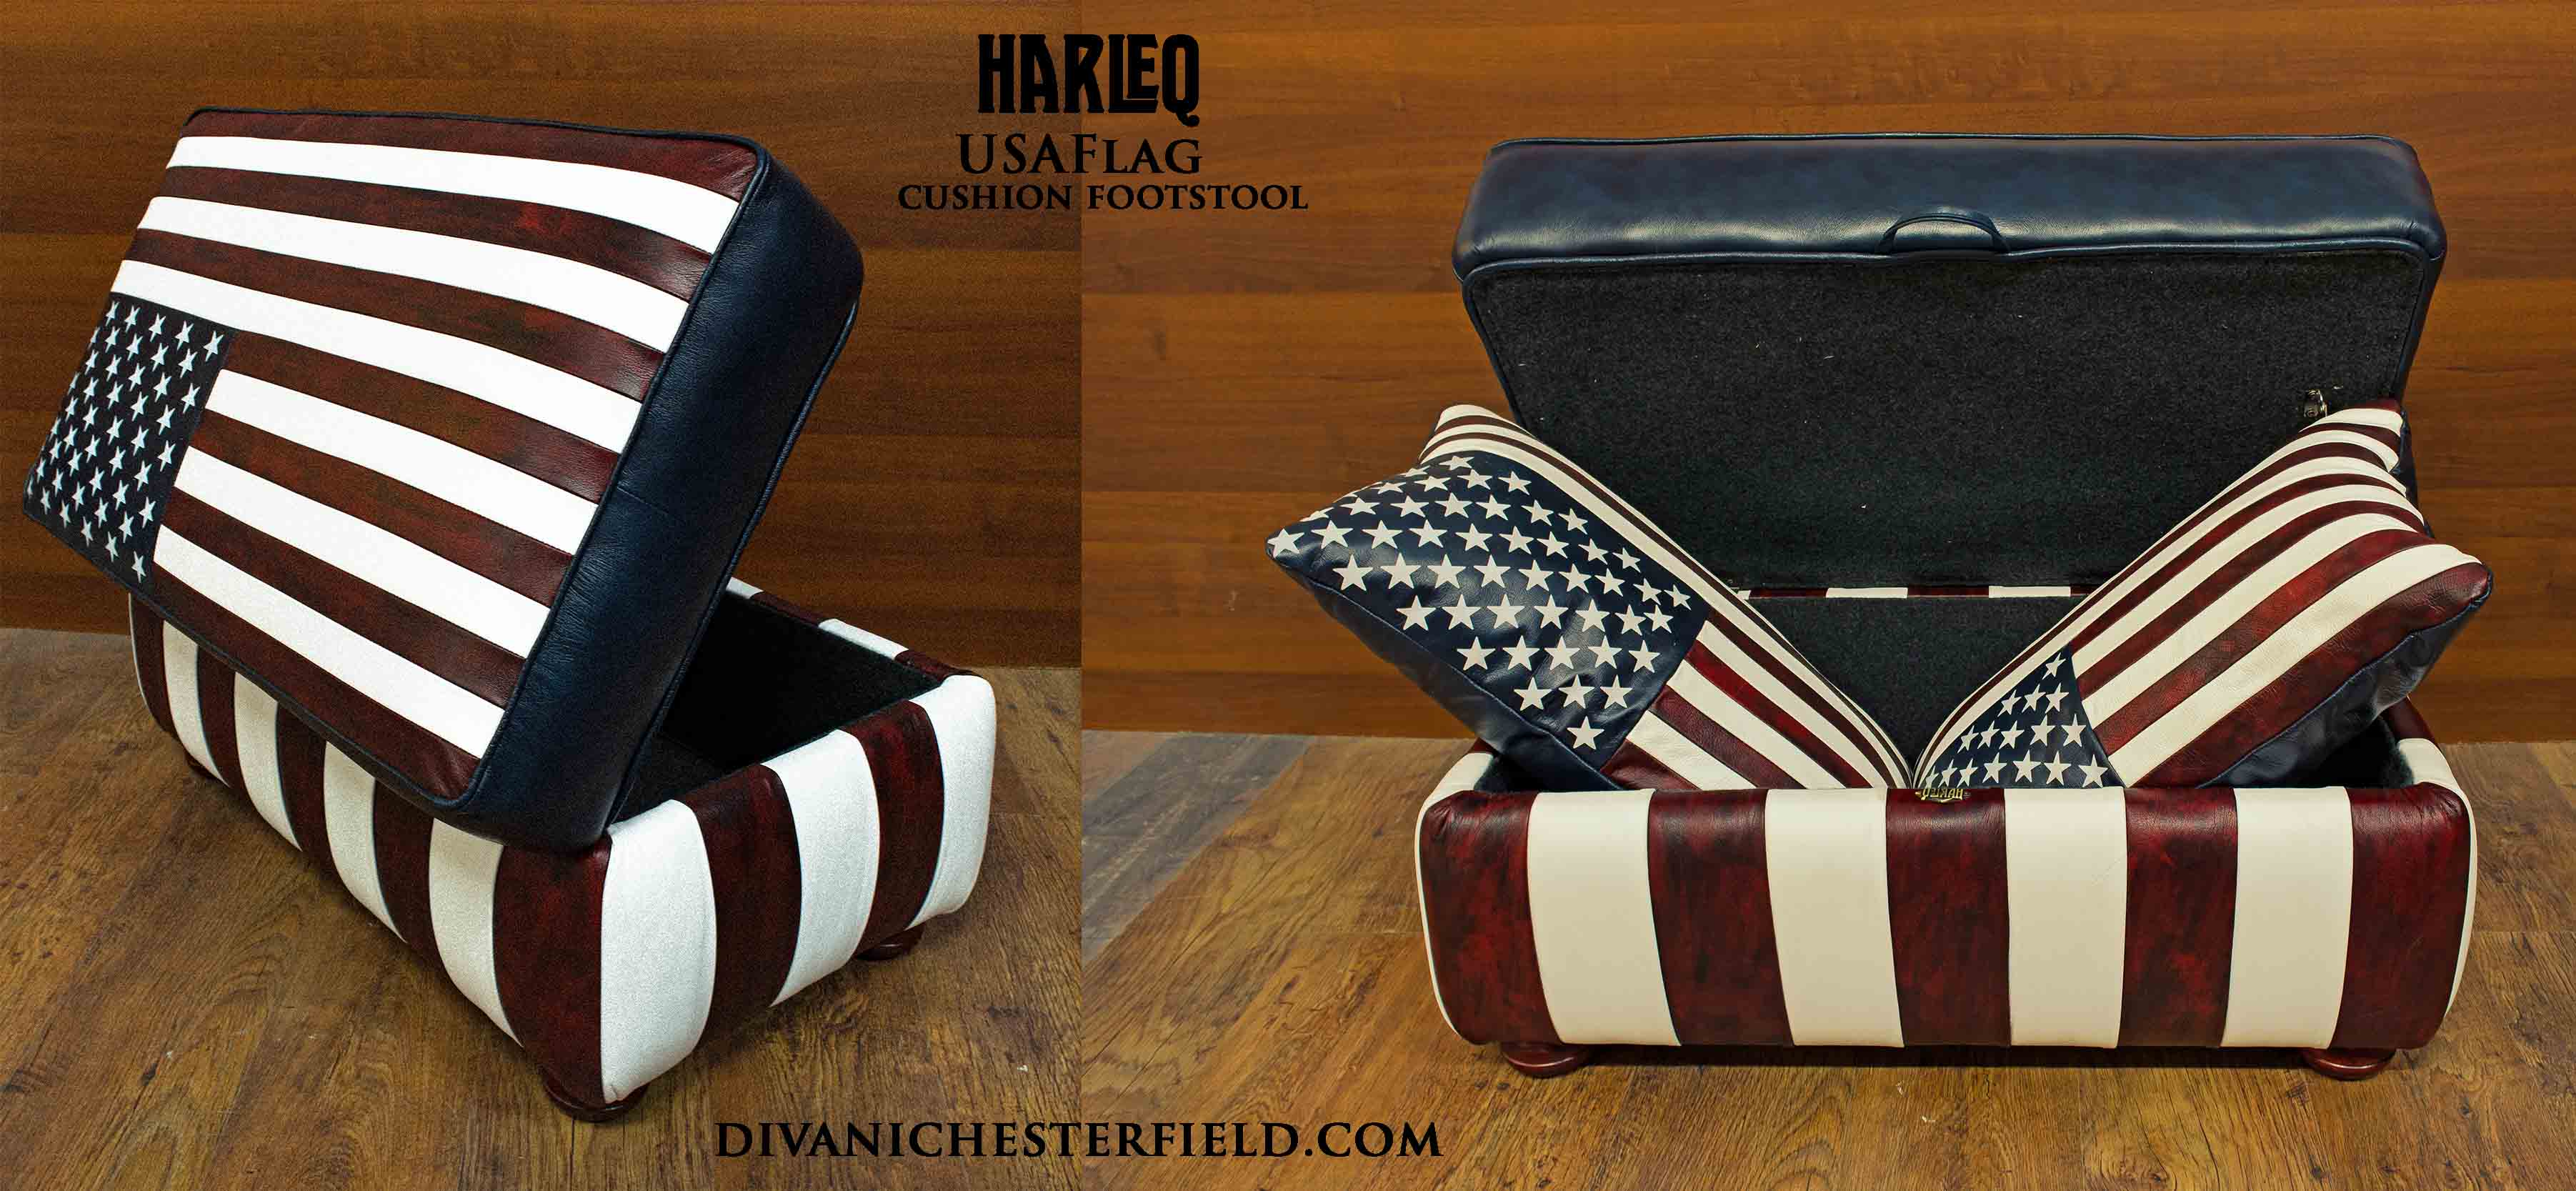 leather-usa-flag-patchwork-ottoman-cushion-footstool